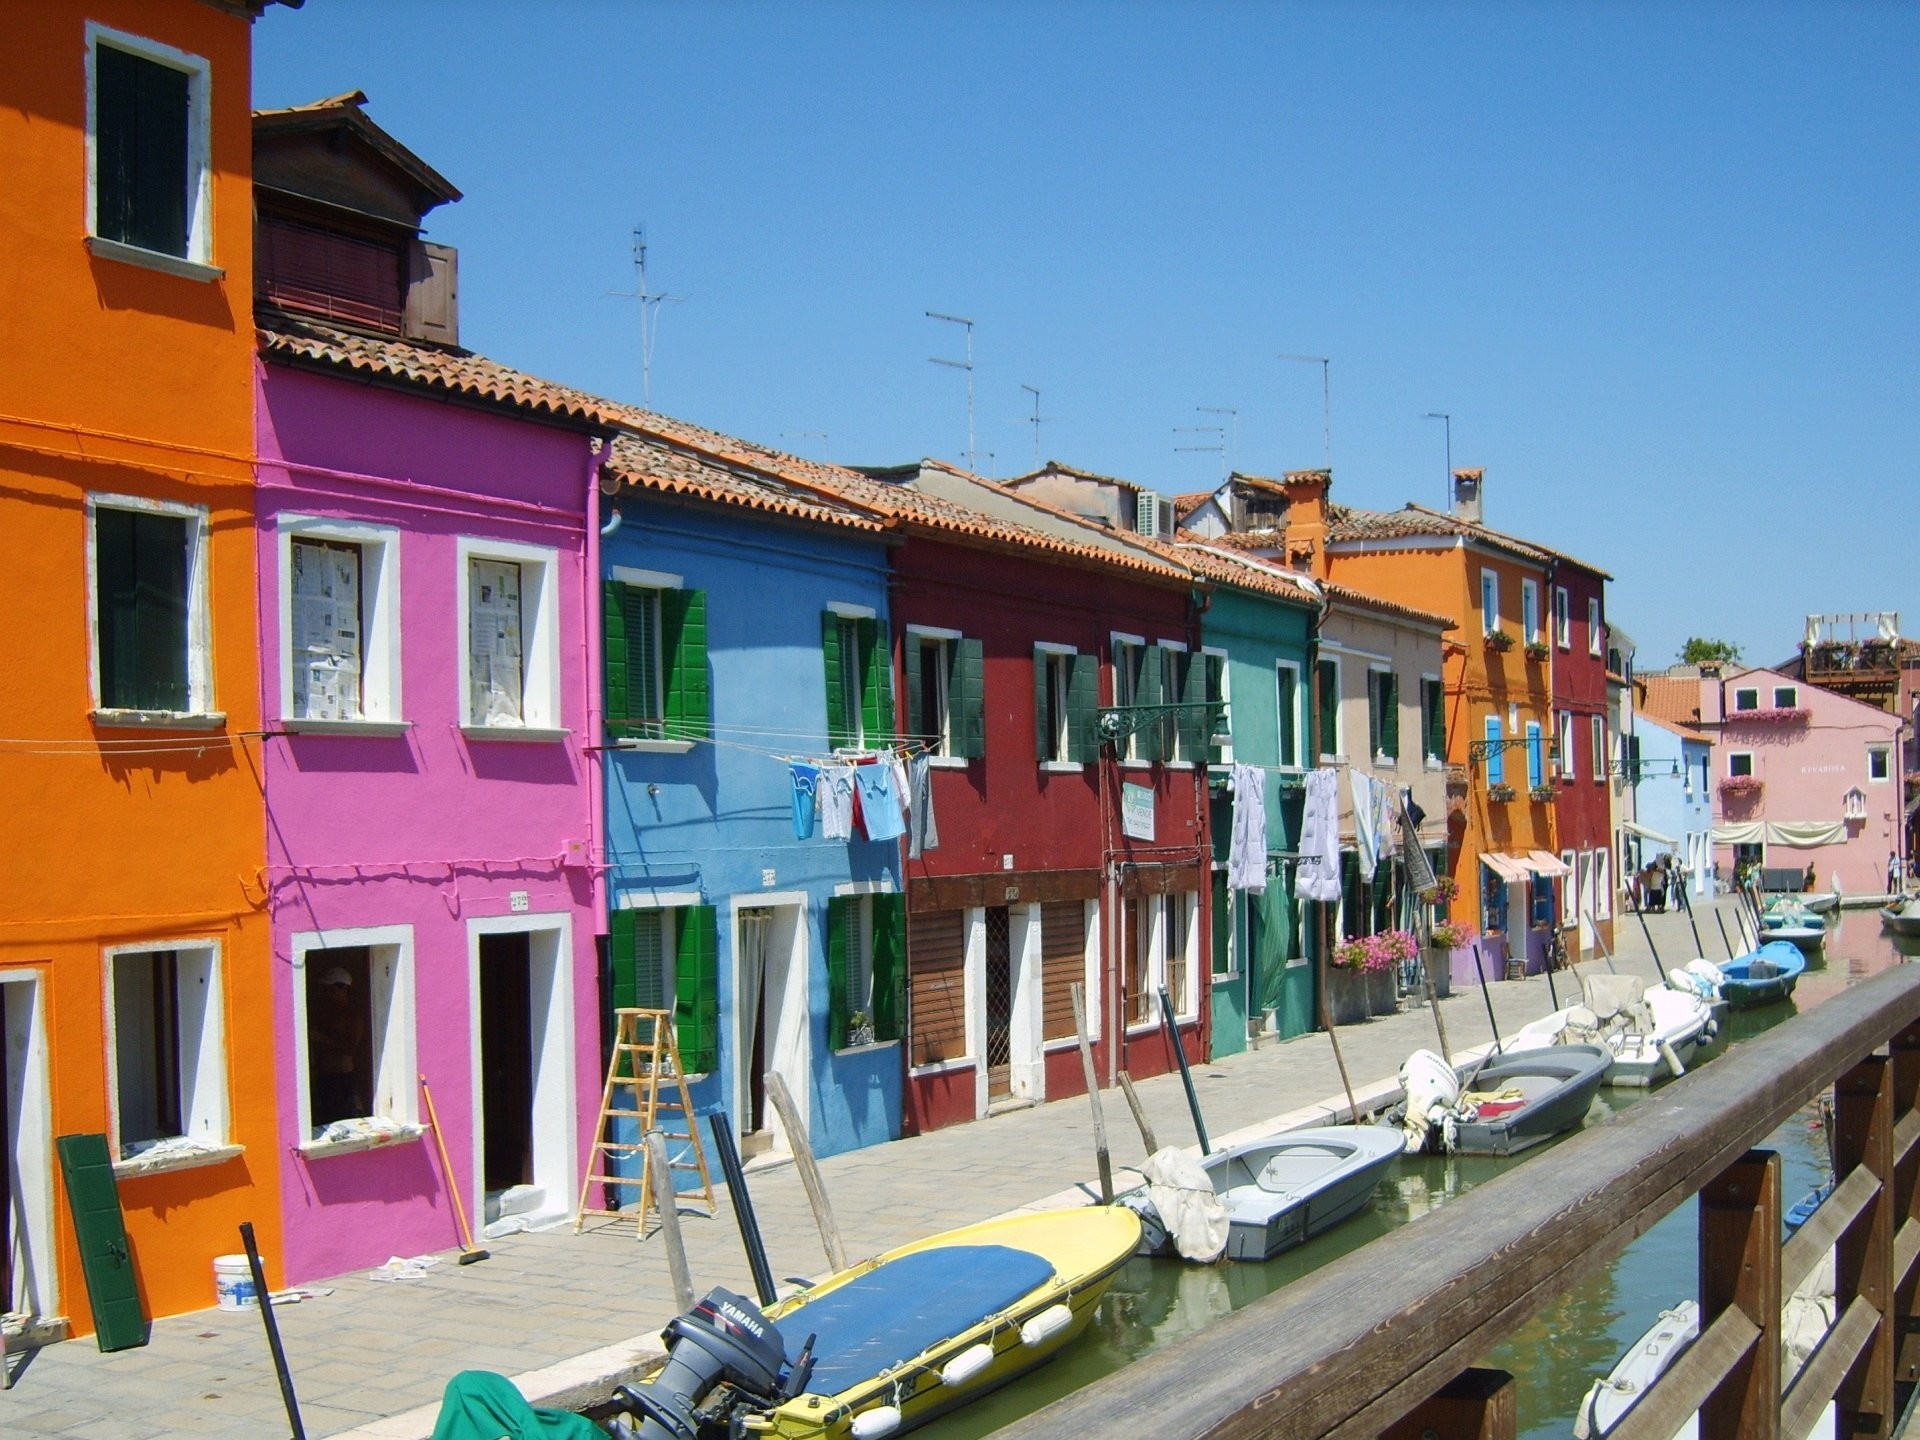 1920x1440 Wallpaper colorful houses venice italy